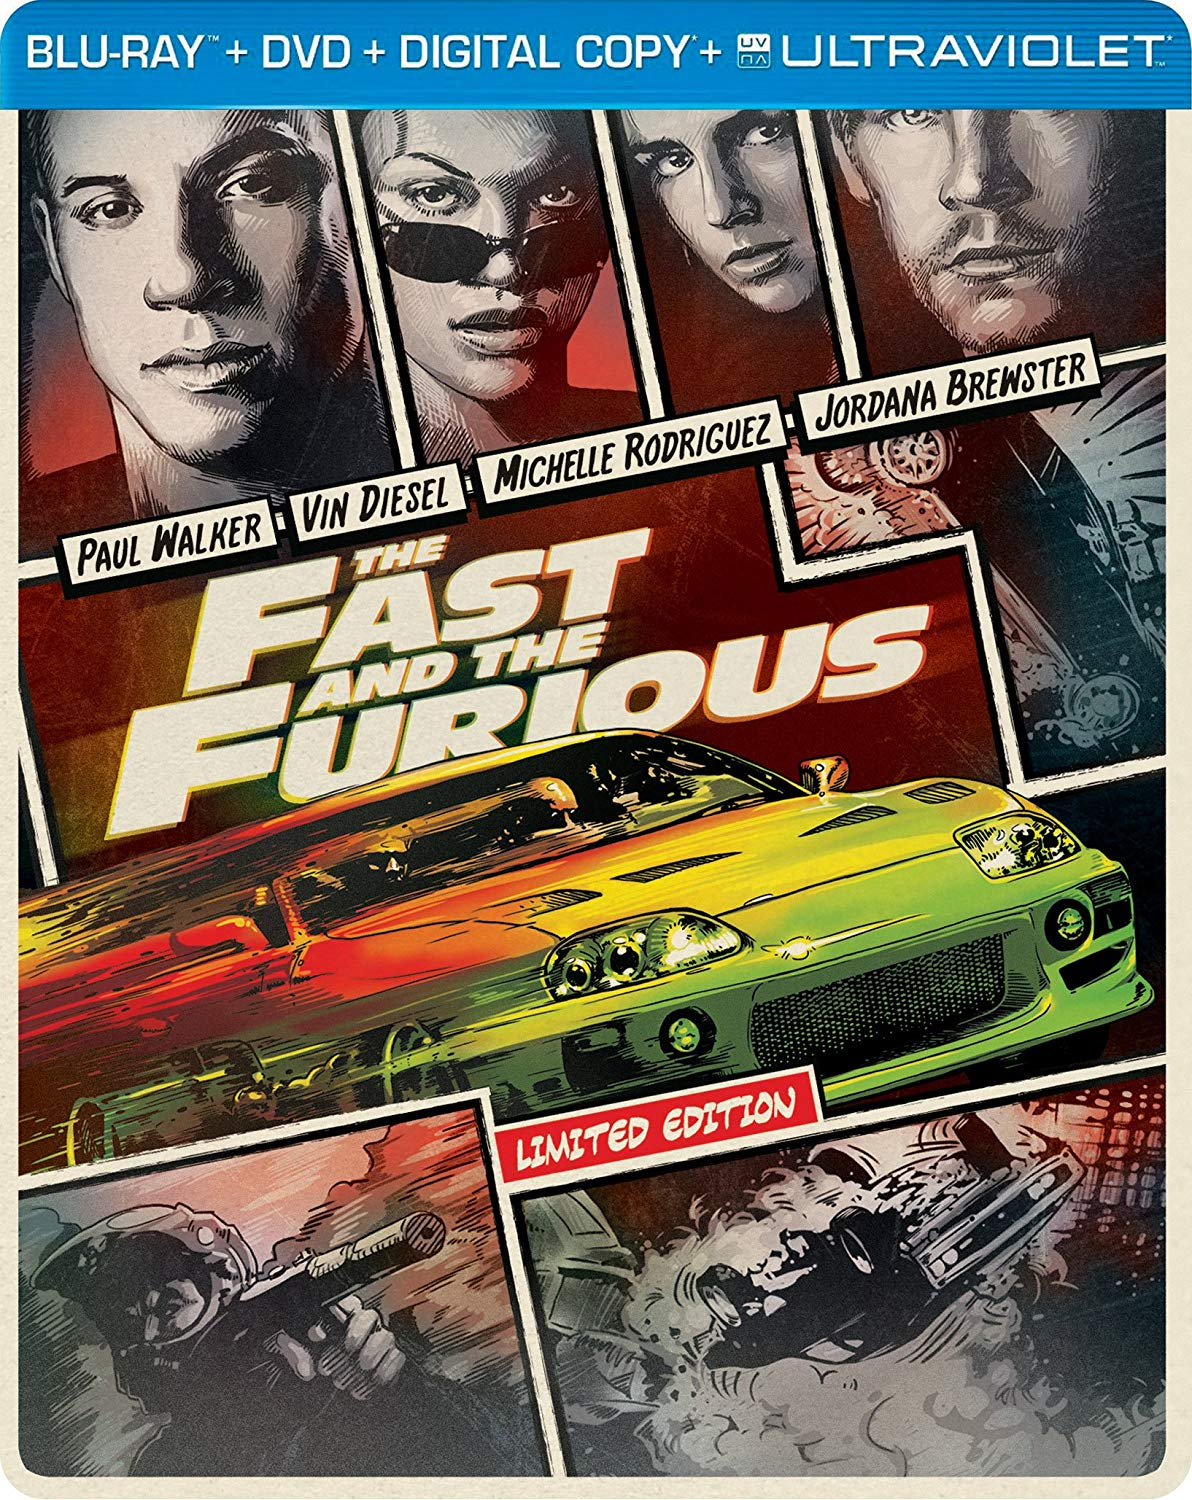 The Fast & The Furious [Movie] - The Fast and the Furious [Limited Edition]